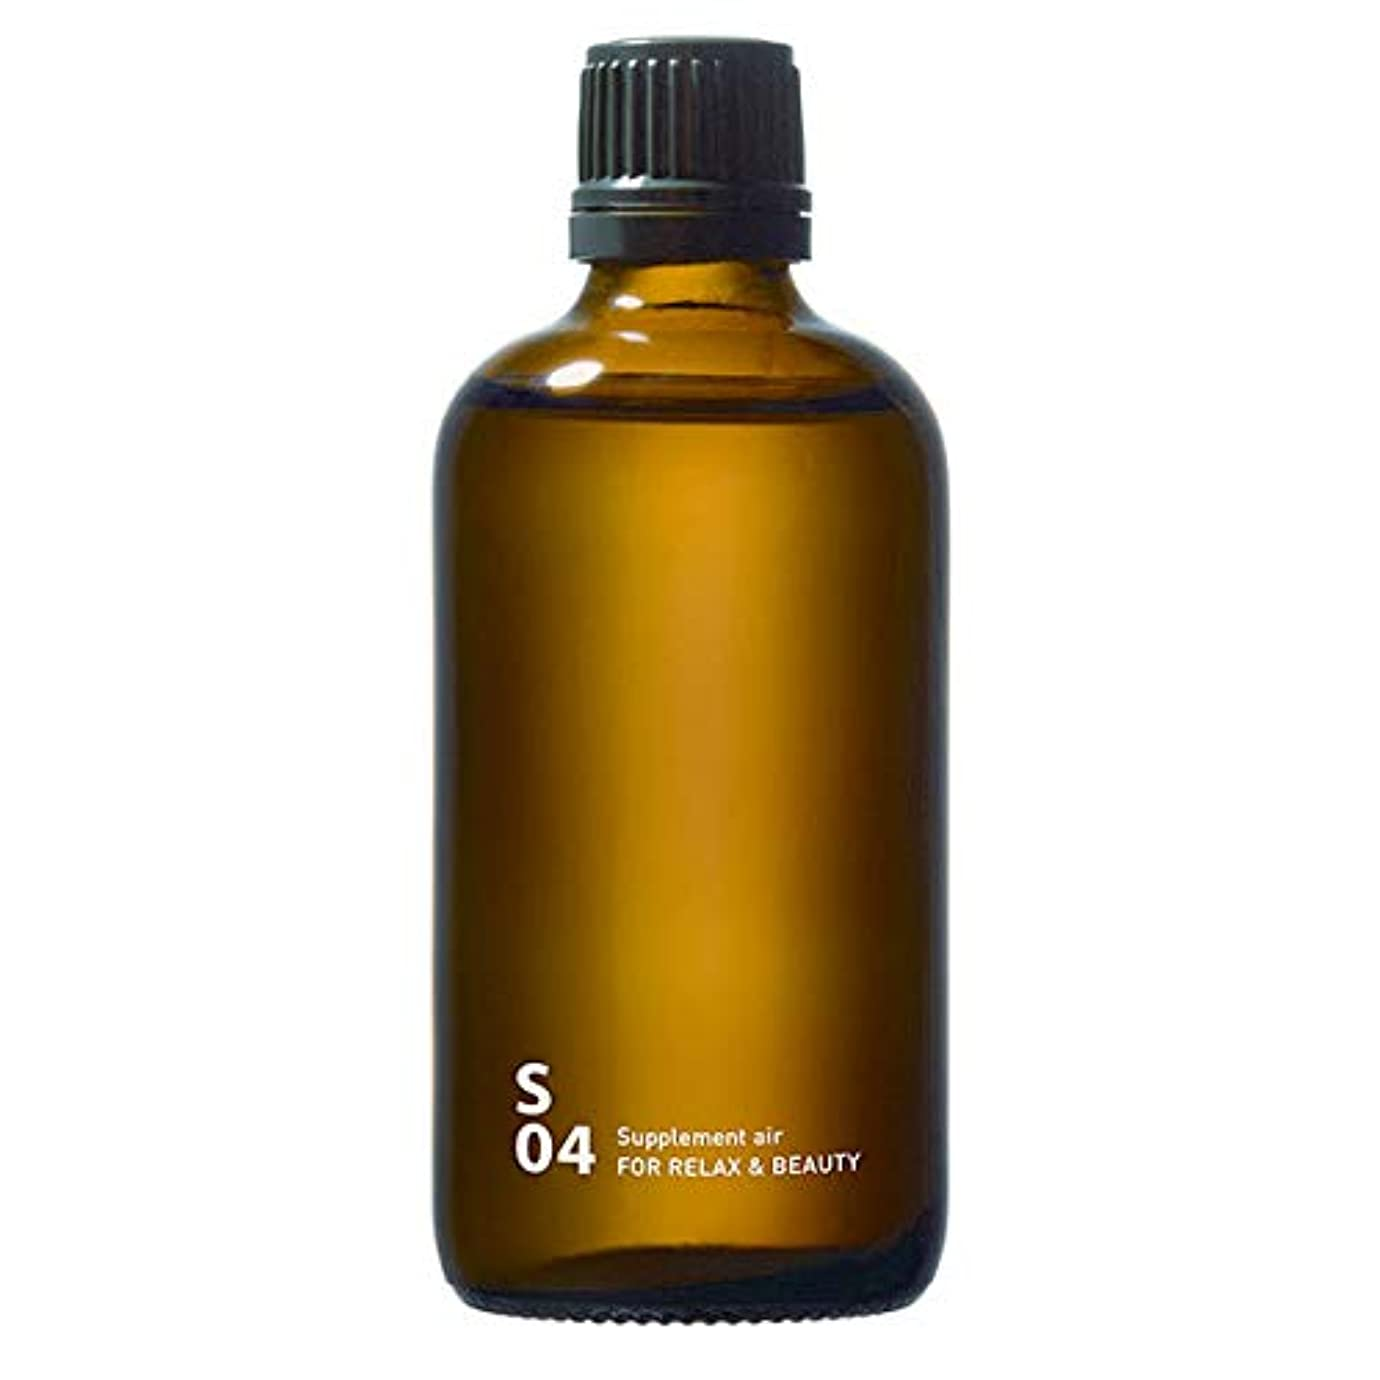 気取らない最も早い違法S04 FOR RELAX & BEAUTY piezo aroma oil 100ml